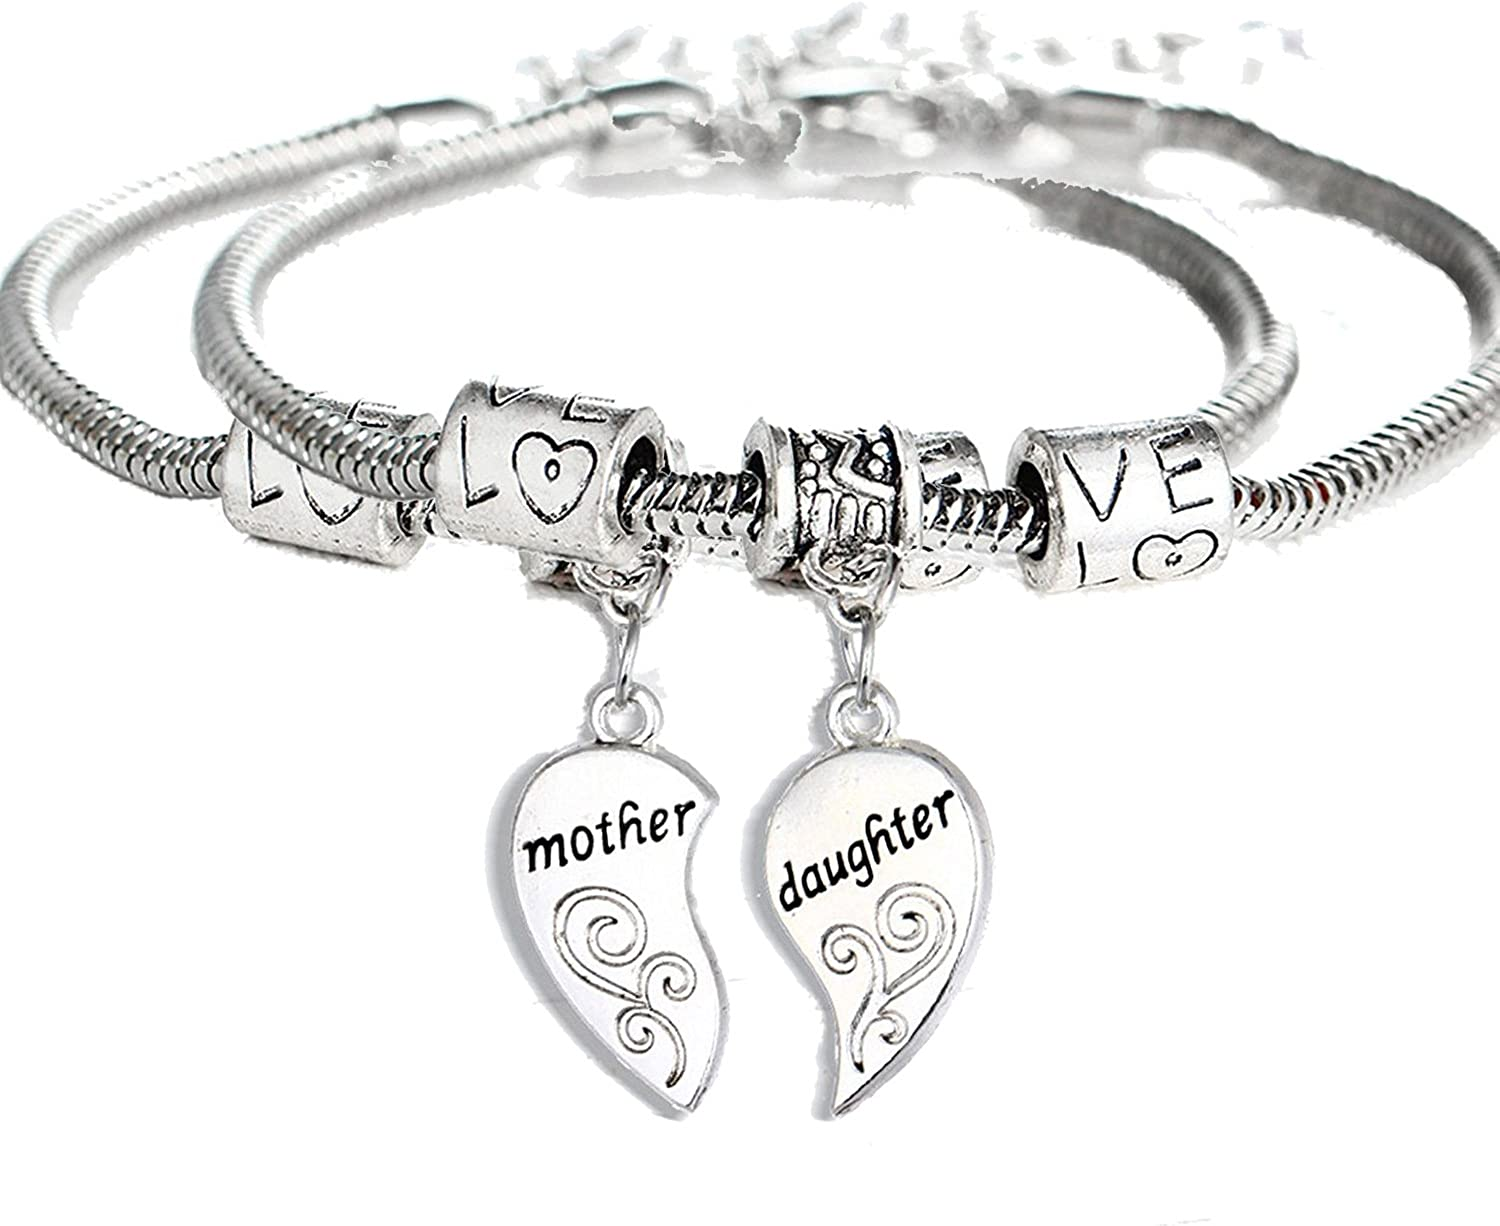 B06XDMNCSS YEEQIN 2PCs Matching Heart Mother Daughter Bracelets Mother Daughter Jewelry Set Gift for Mom or Daughter 71b1iPtL-uL